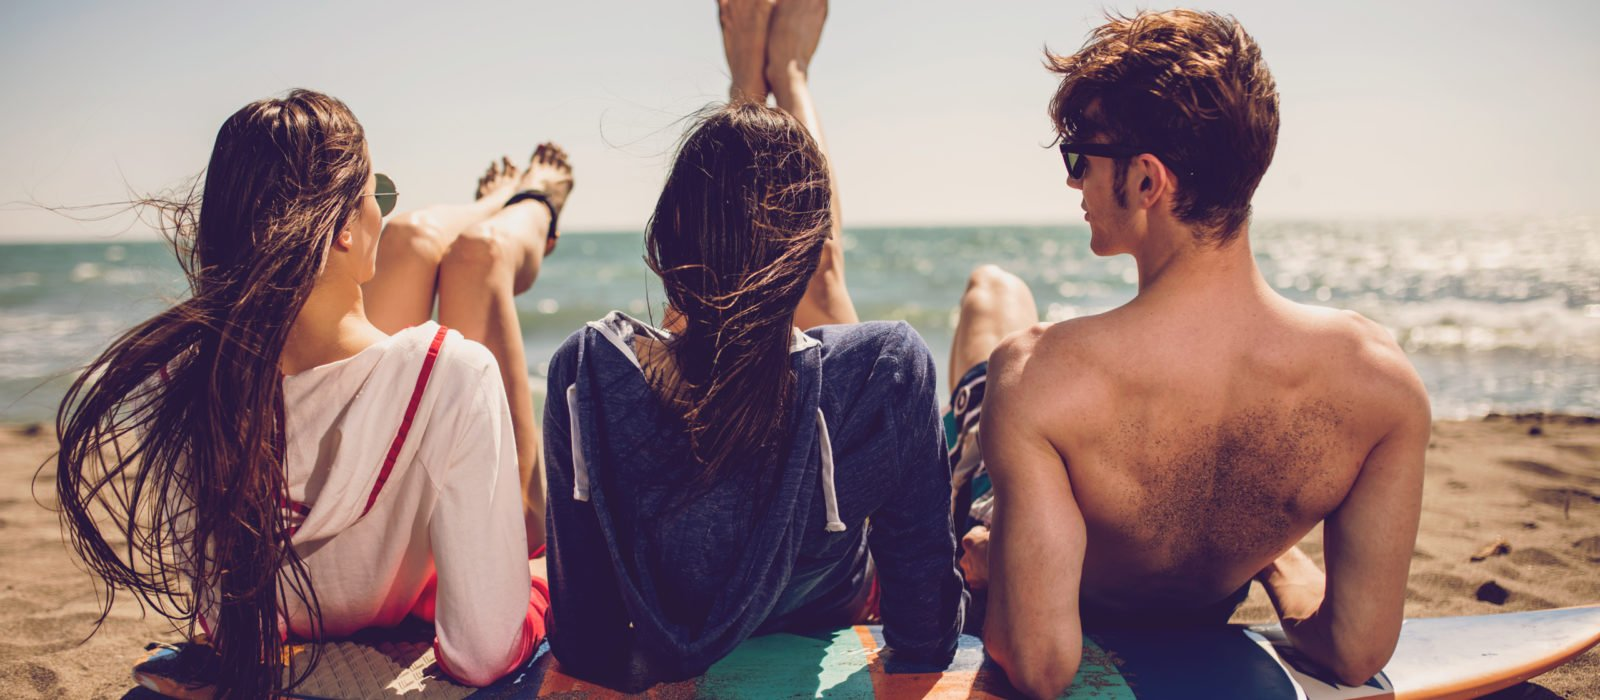 teenagers-travel-beach